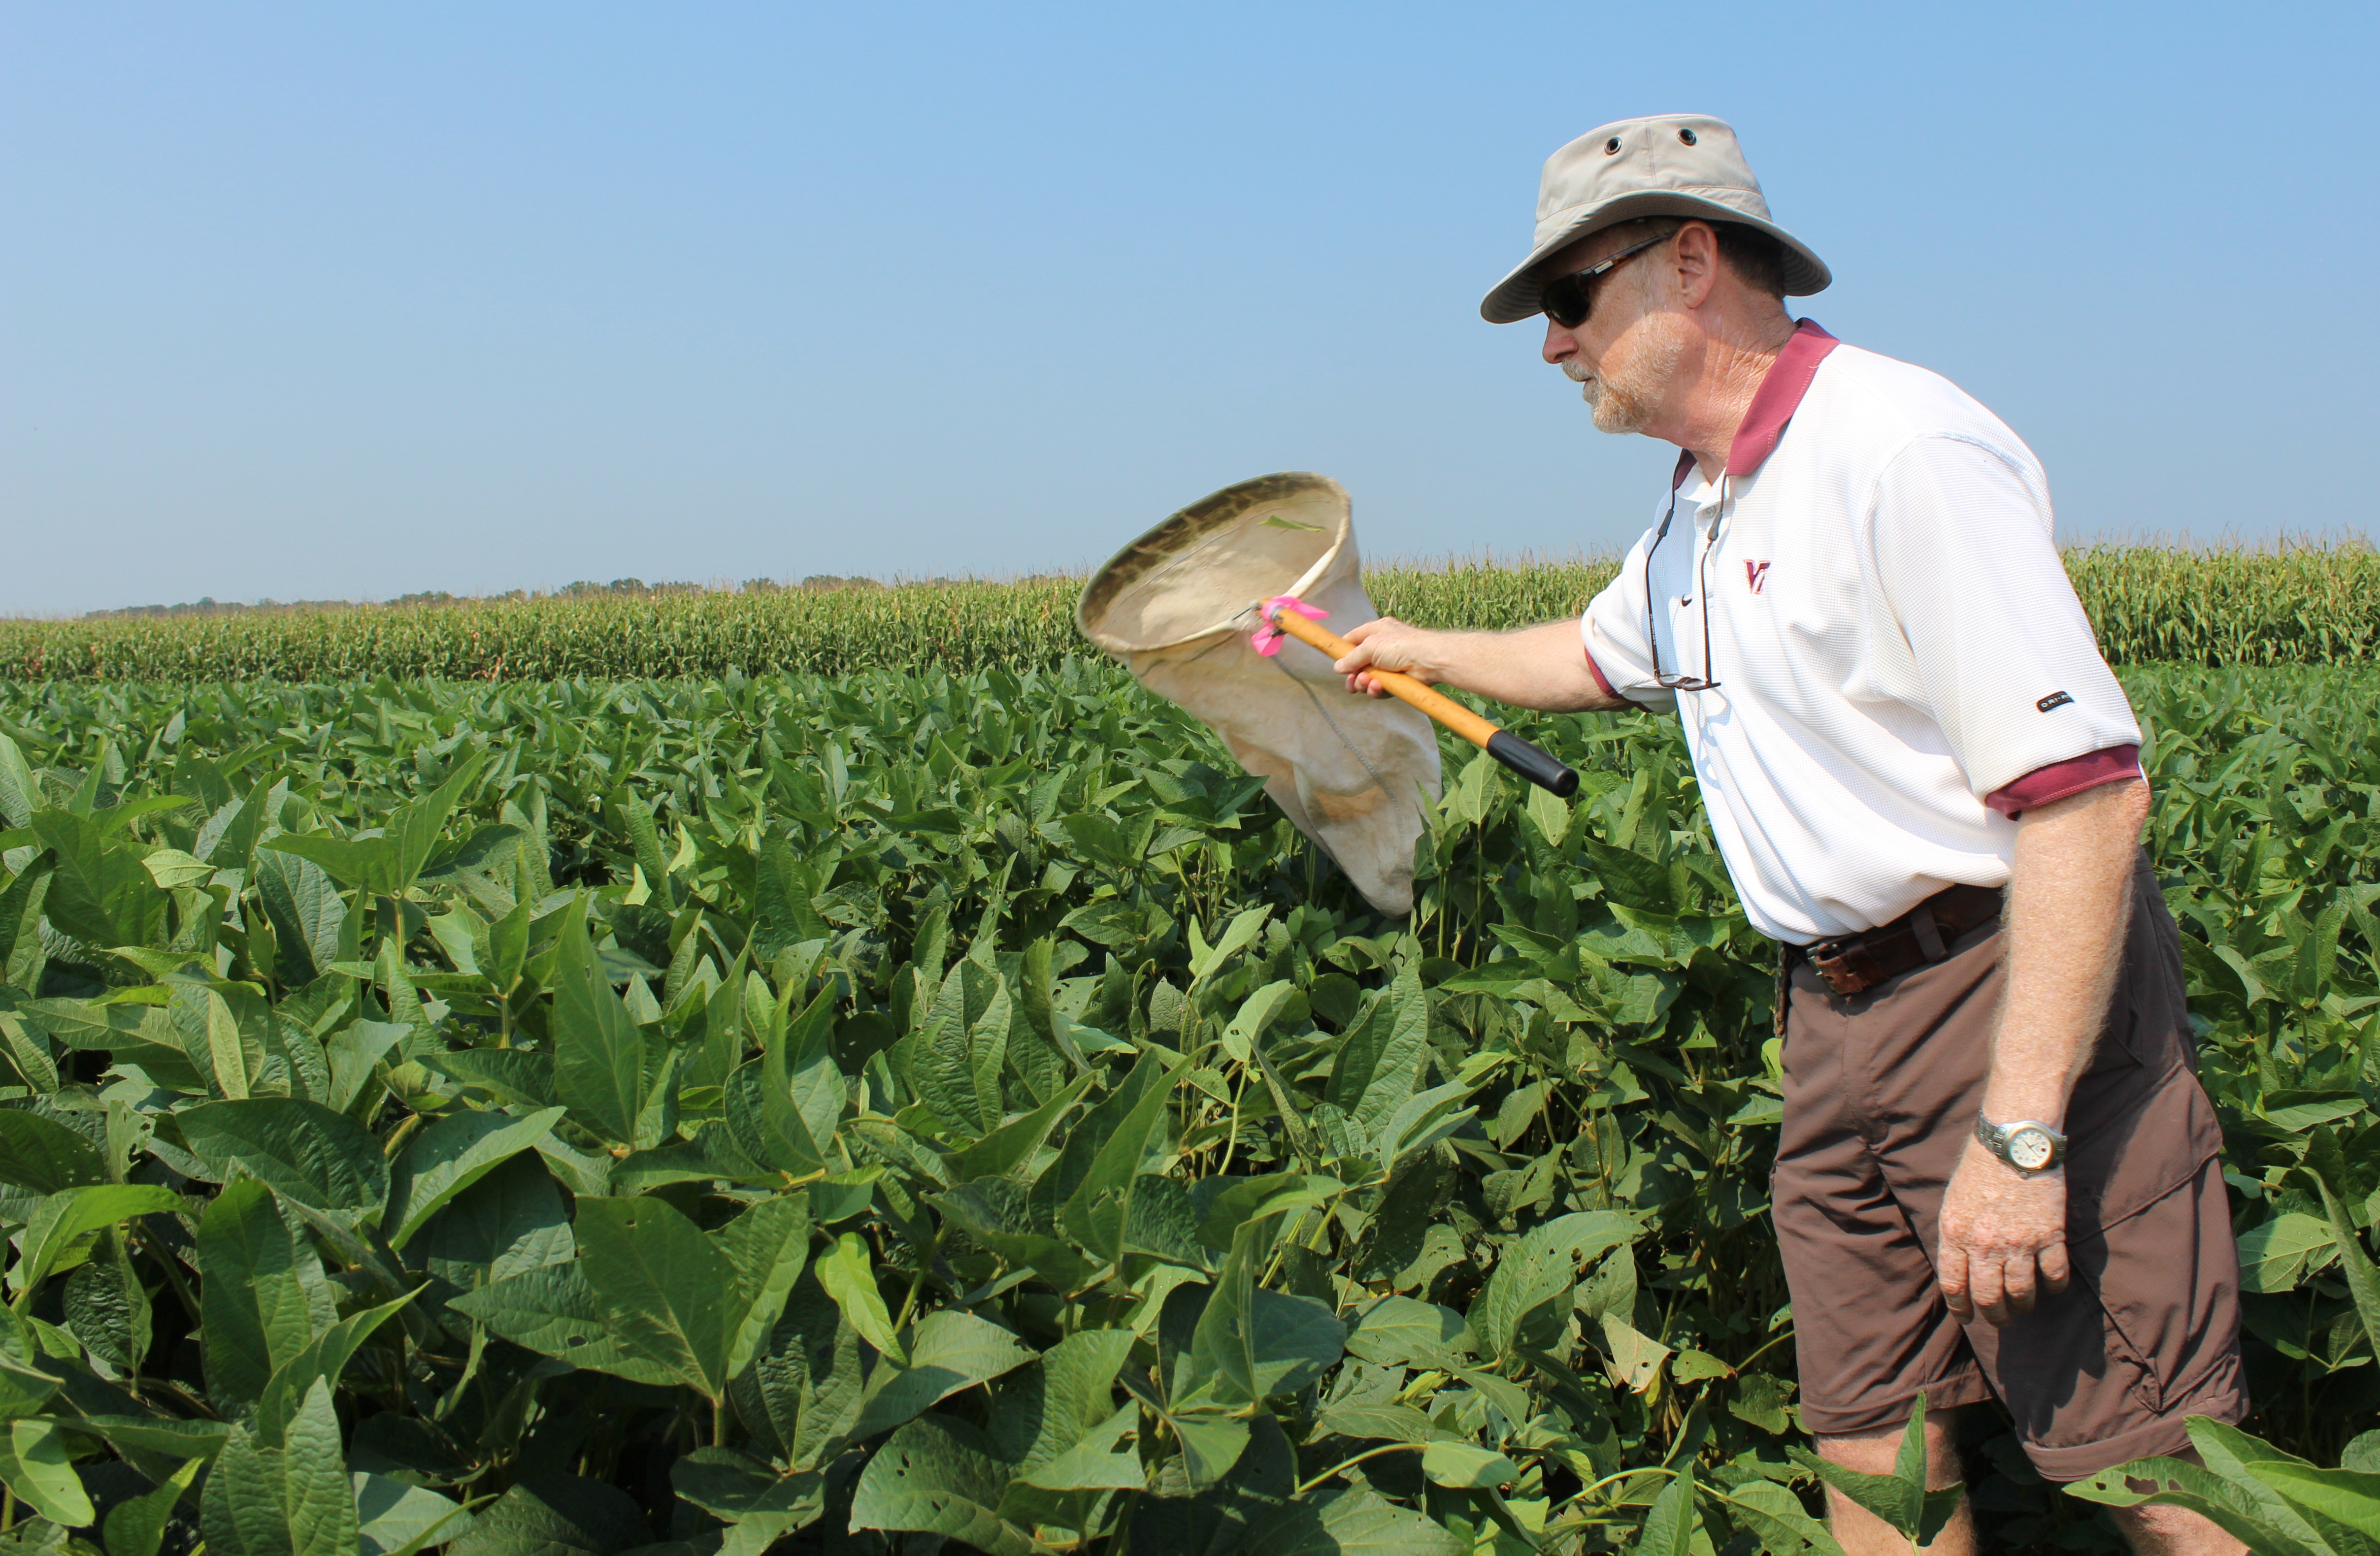 Ames Herbert, a professor of entomology at Virginia Tech, sweeps a soy bean field for brown marmorated stink bugs. A team of researchers is sampling crops across the state to see how far the invasive pest is spreading.